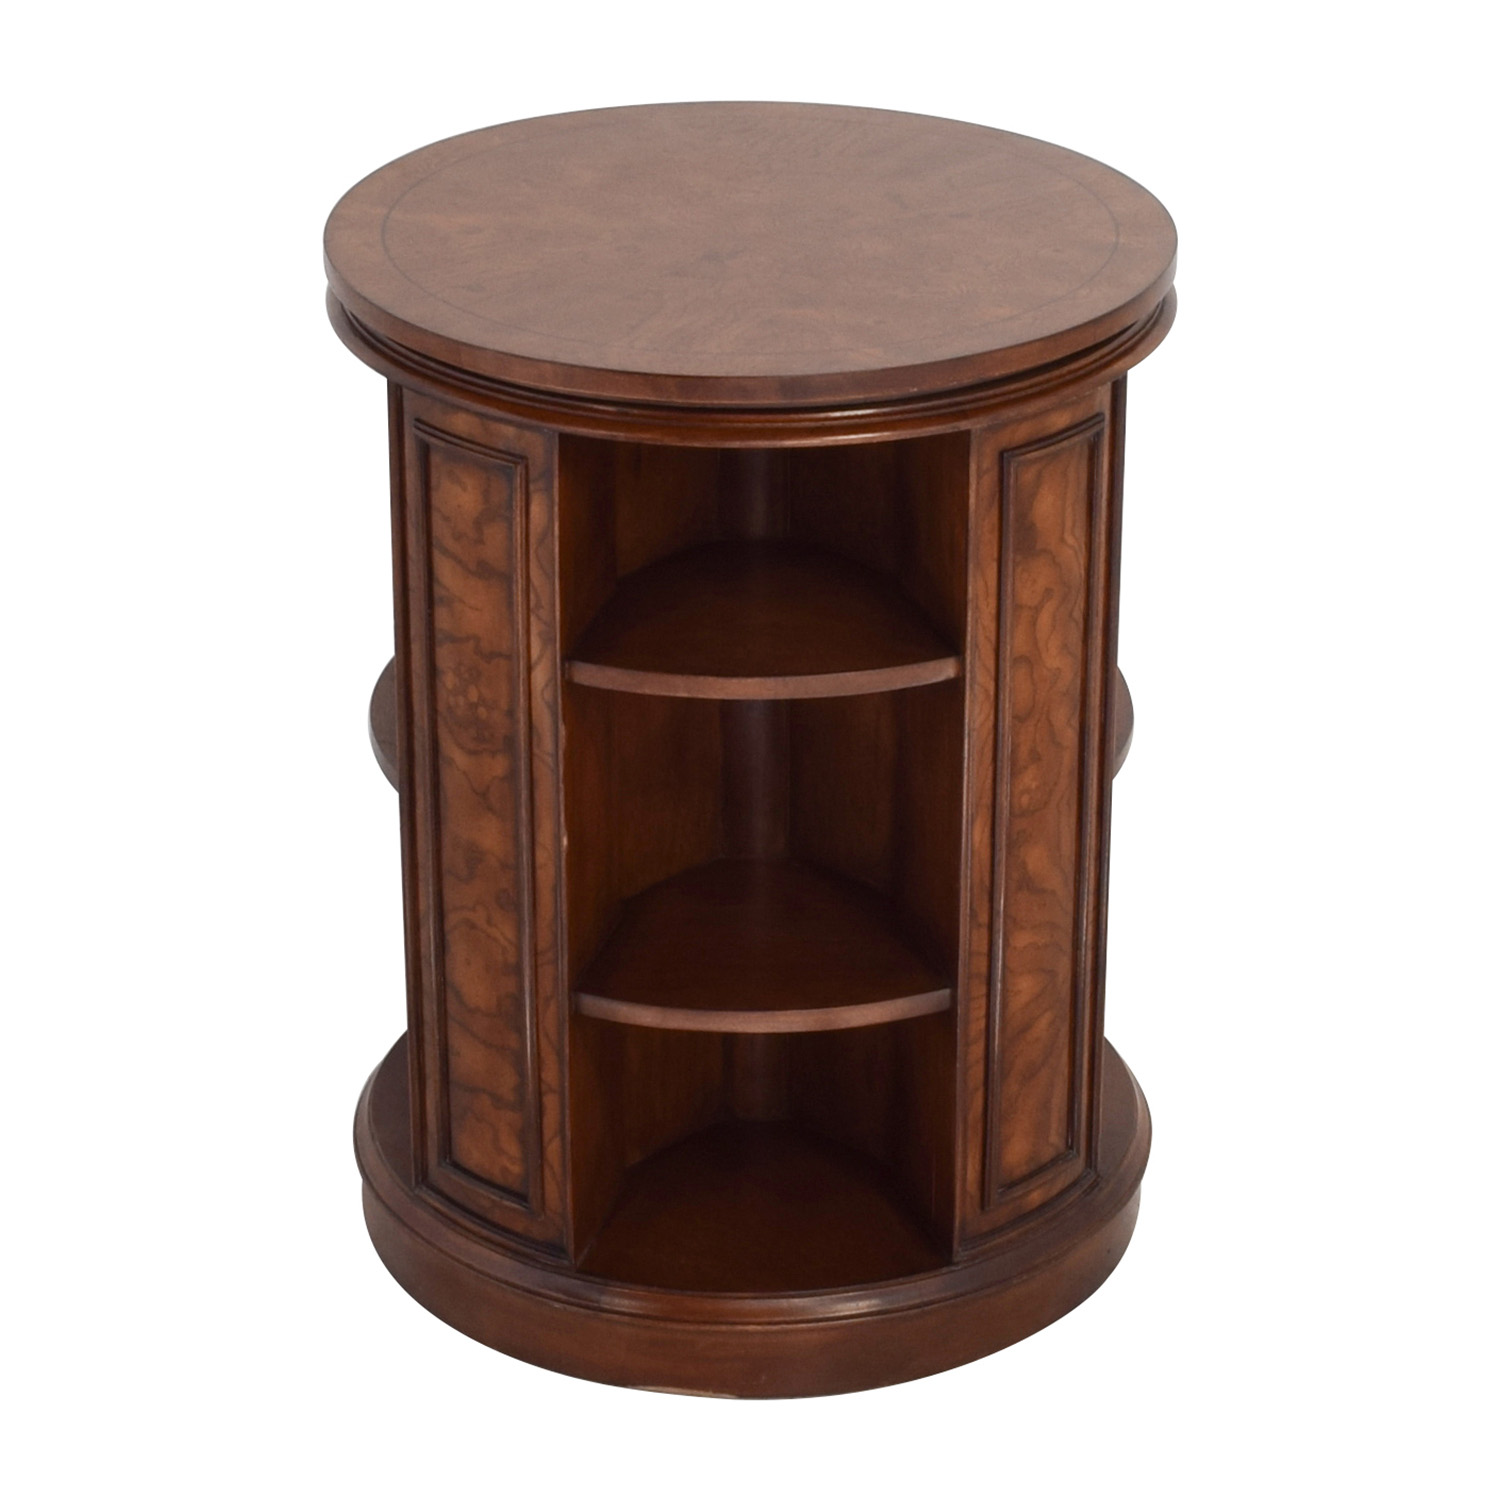 Well-liked 82% OFF - Safavieh Safavieh Rotating Side Table Bookcase / Tables BJ37